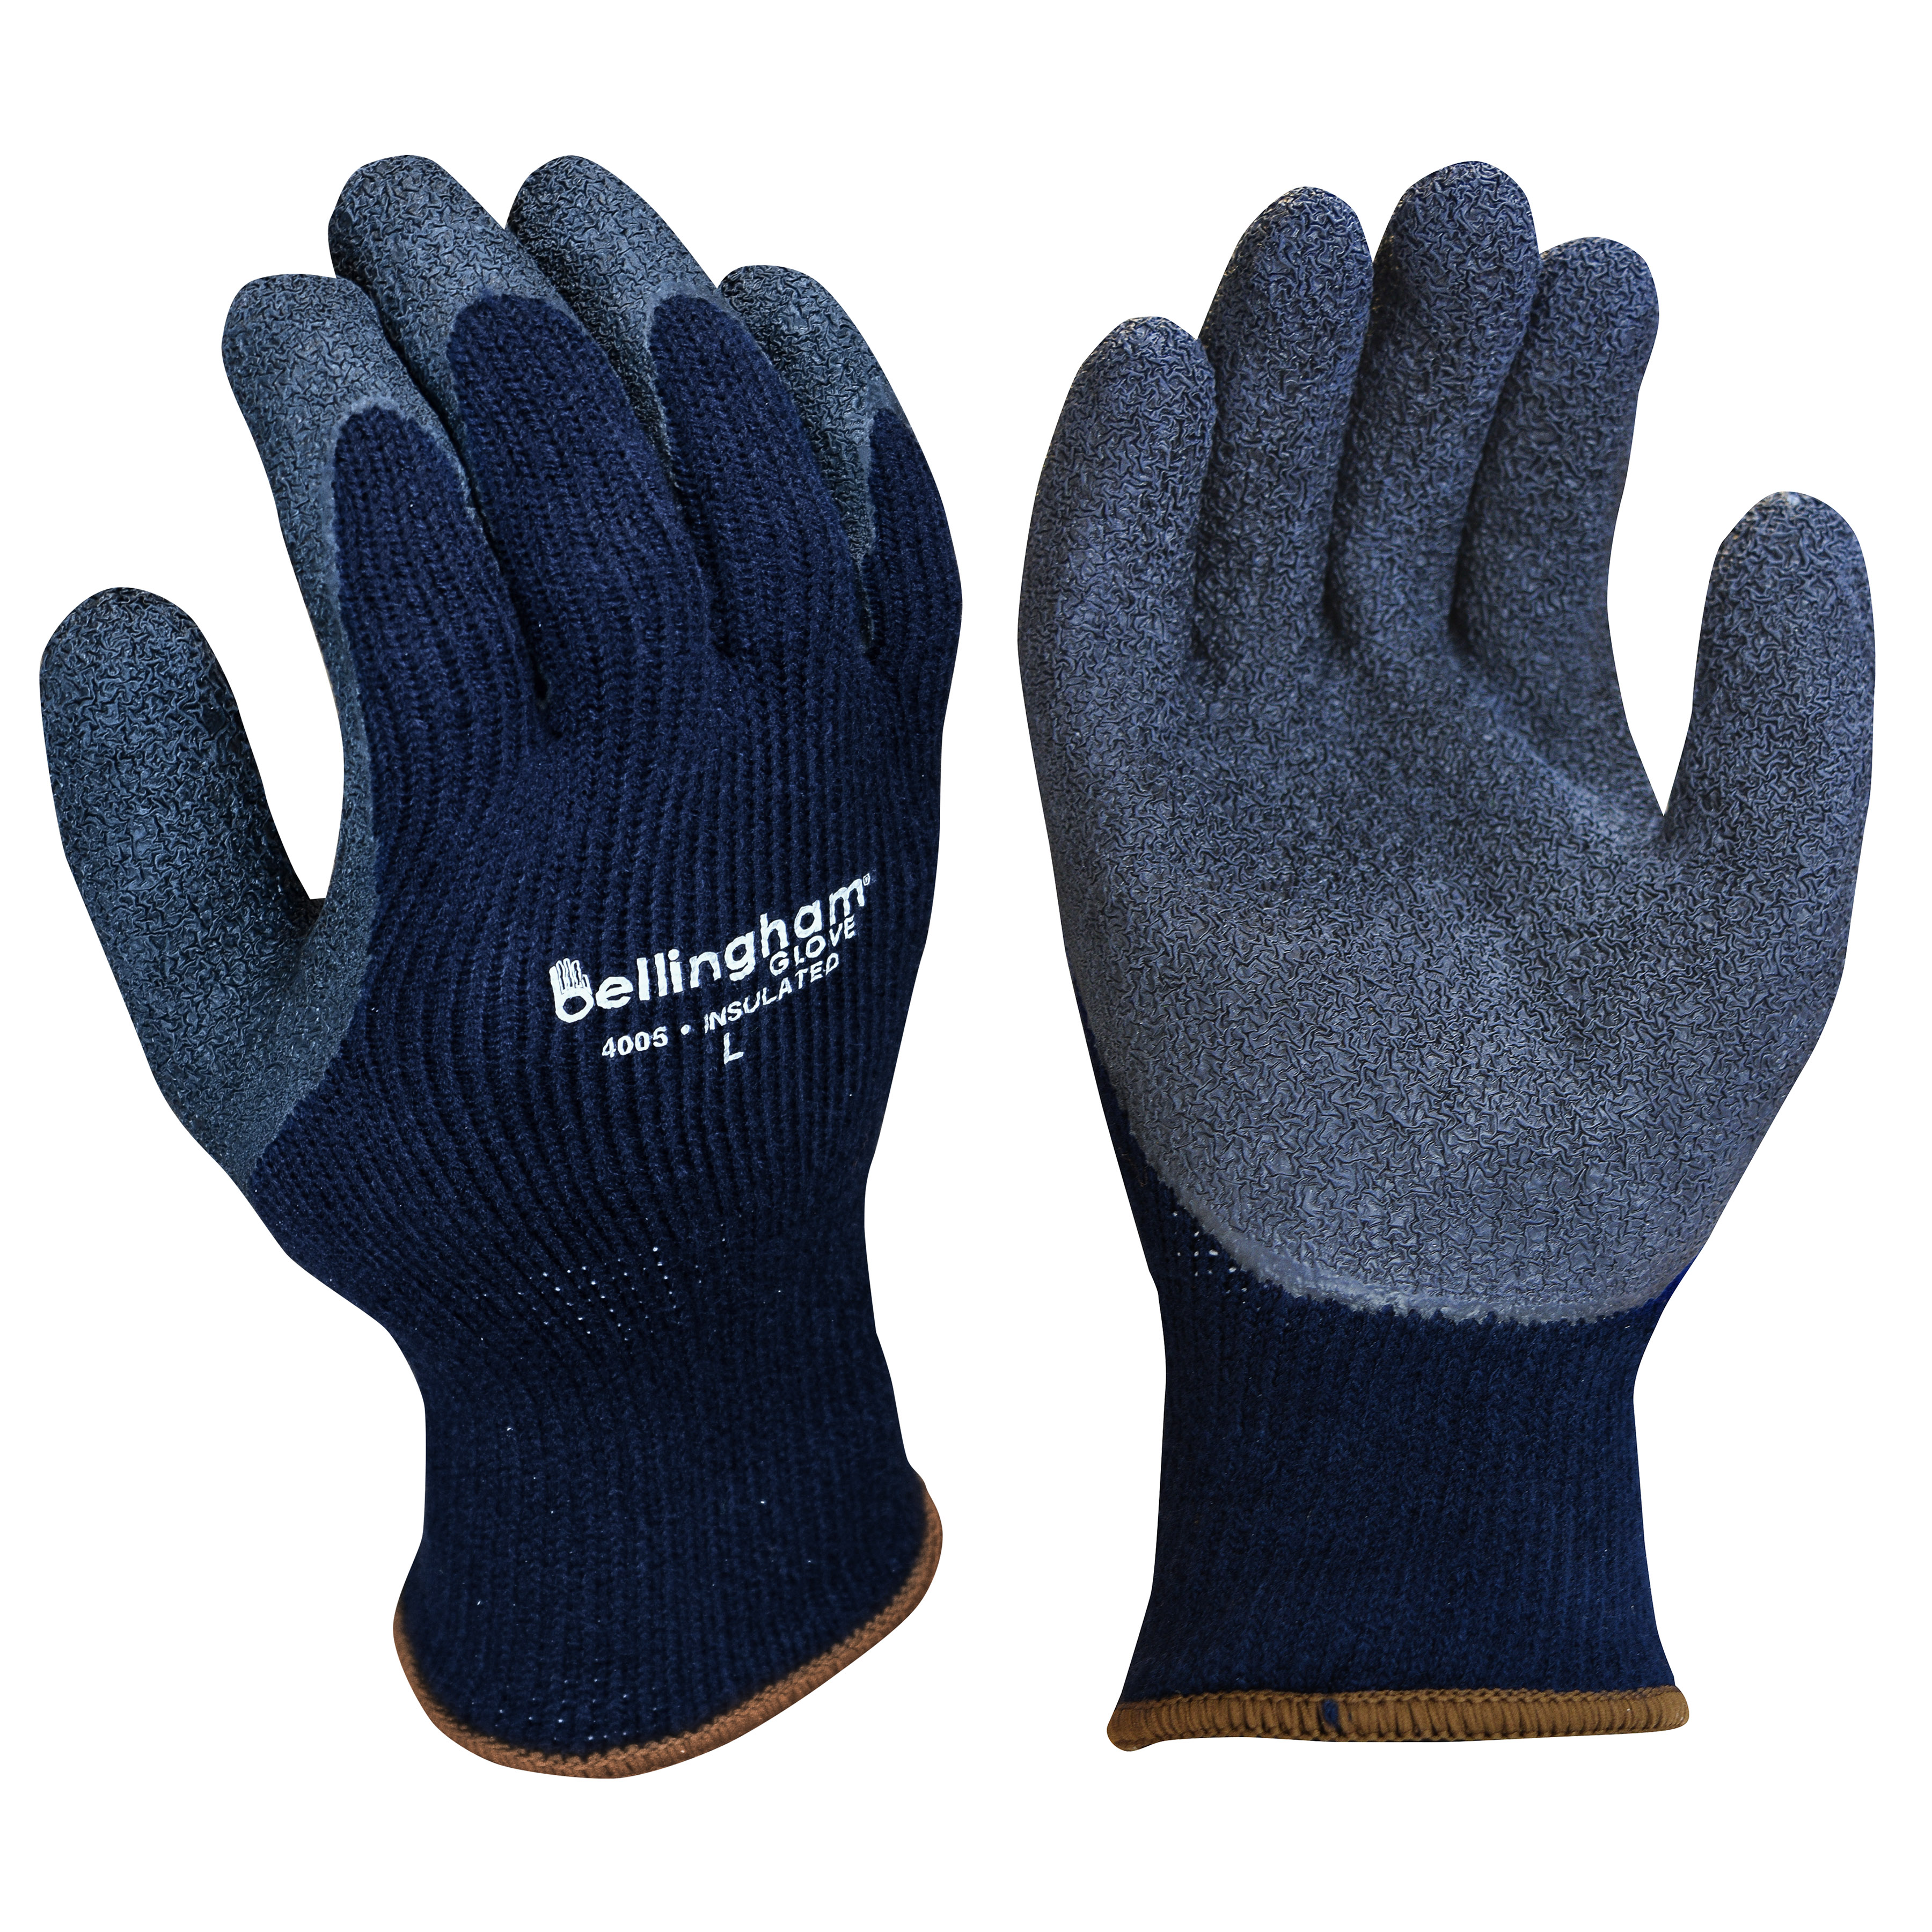 Bellingham Extra HD Thermal Knit Glove